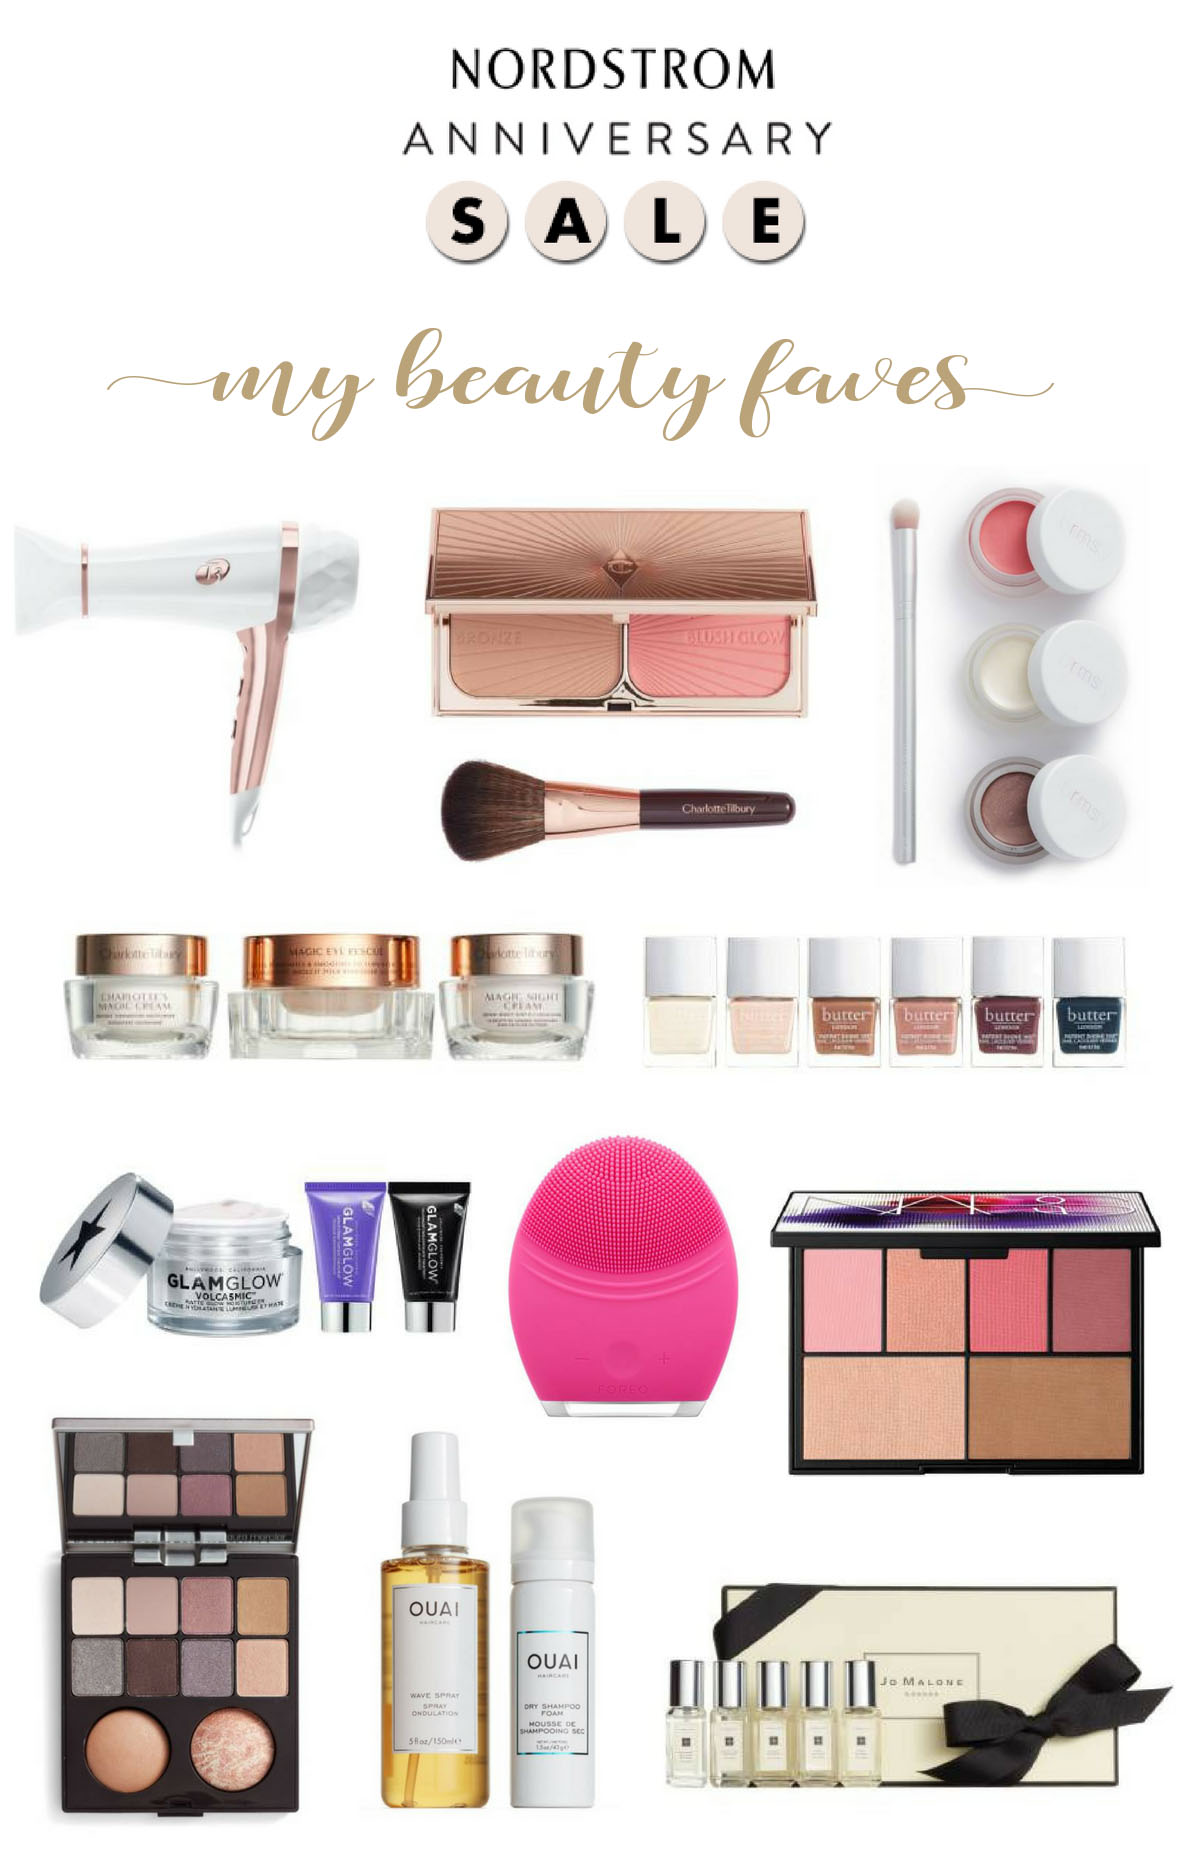 2017 Nordstrom Beauty sale picks of the Nordstrom Anniversary Sale Early Access items as shown by Amanda of A Glam Lifestyle blog